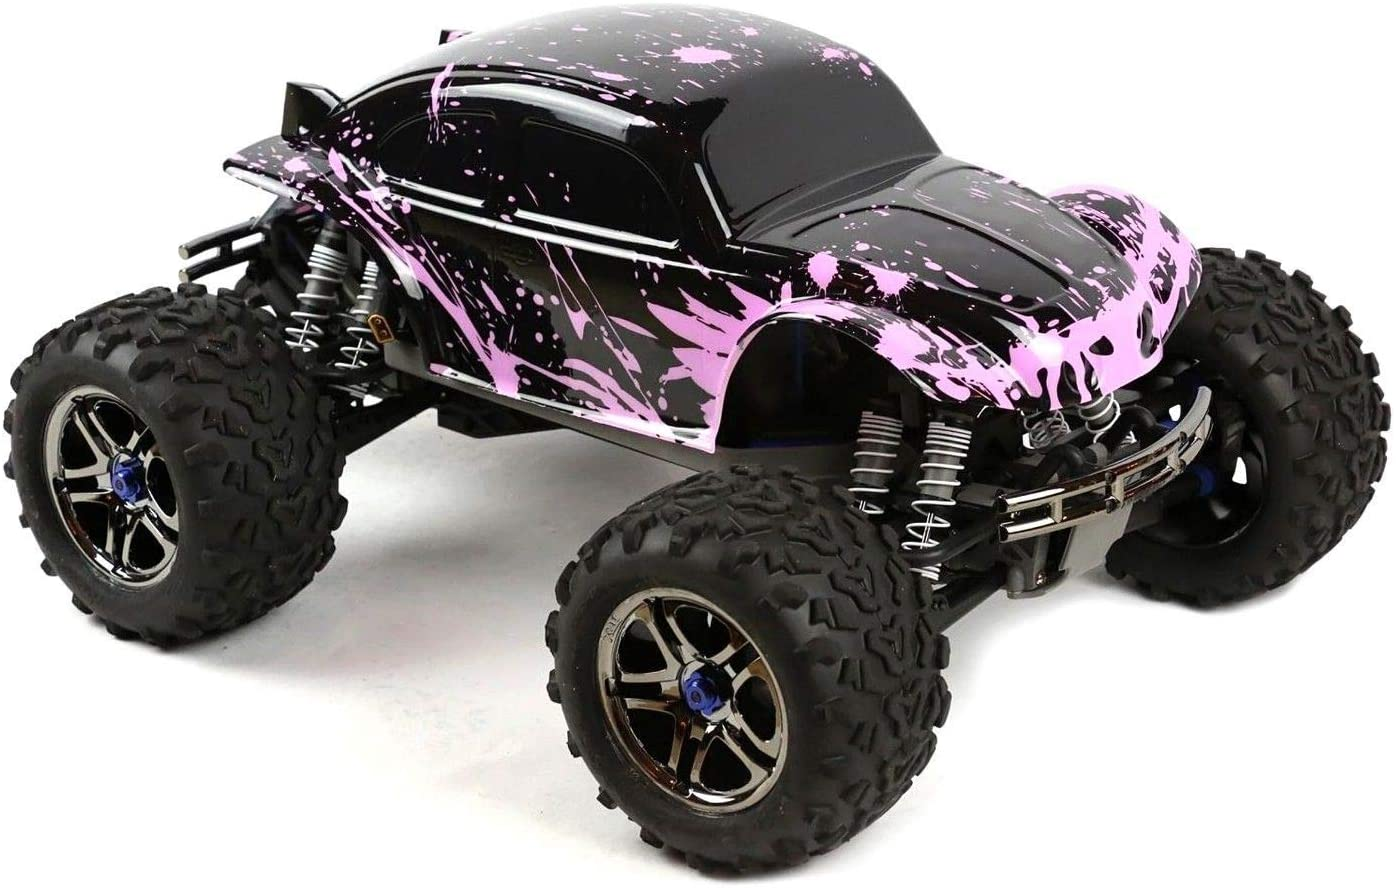 SummitLink Compatible Custom Body Muddy Pink Over Black Replacement for 1/10 1/8 Scale RC Car or Truck (Truck not Included) B-BP-02